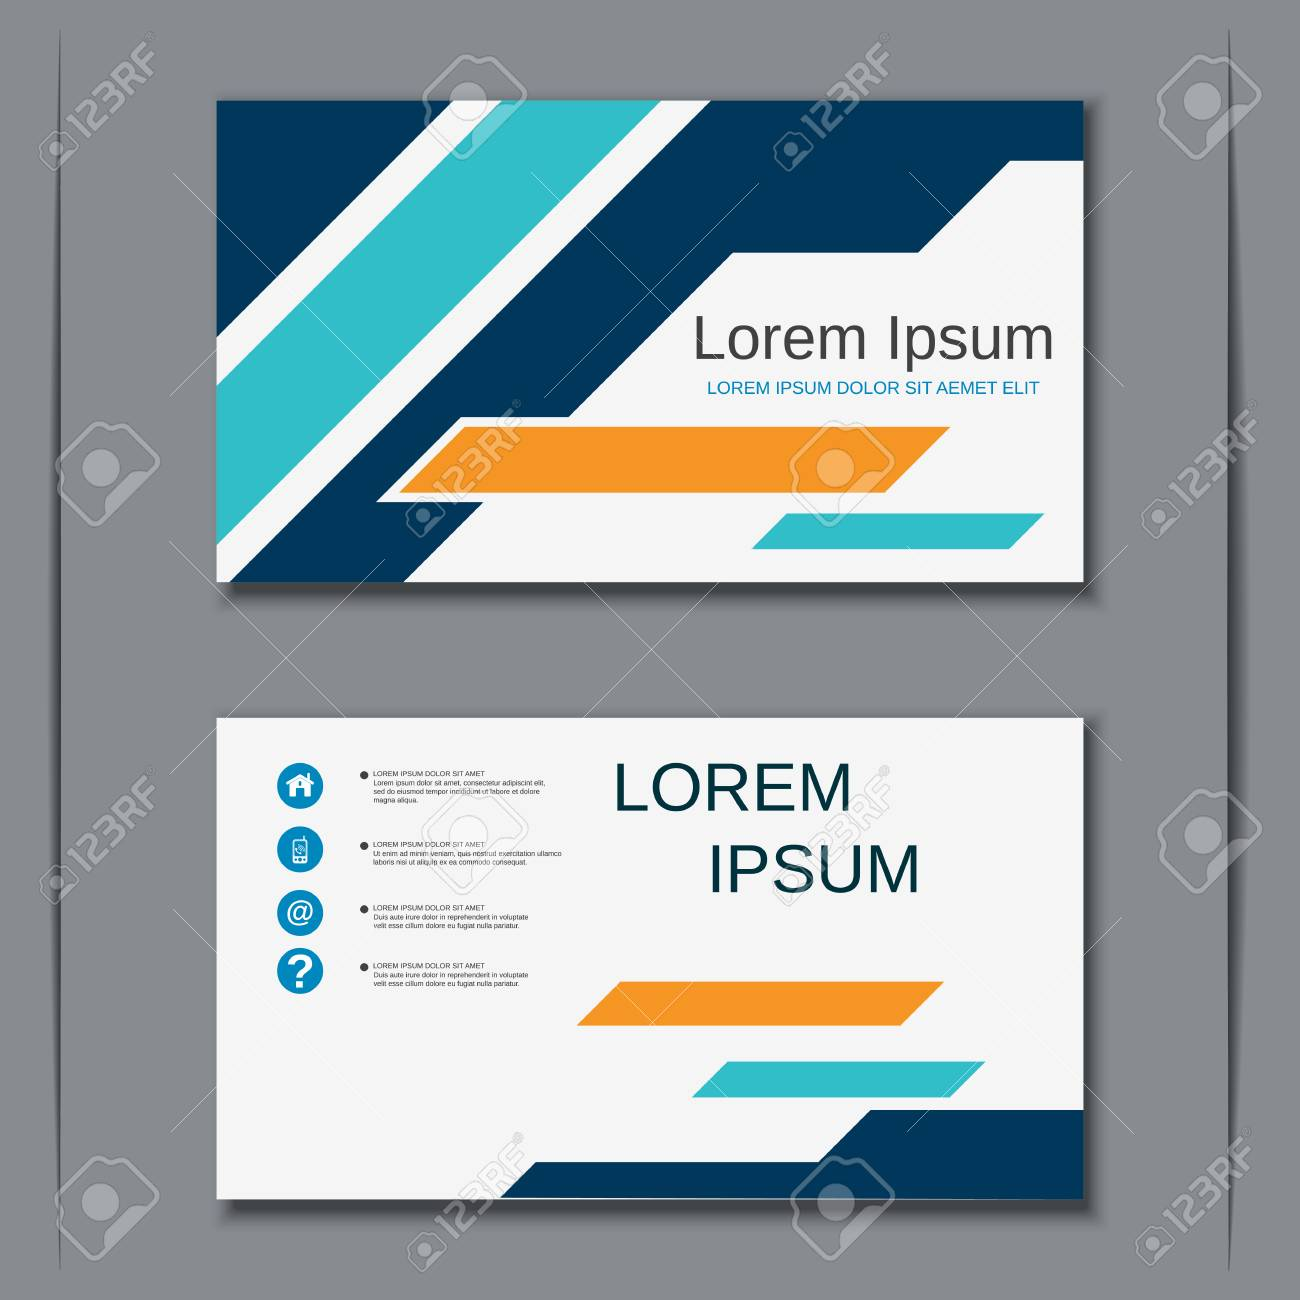 Modern business visiting card vector design template royalty free banco de imagens modern business visiting card vector design template reheart Images